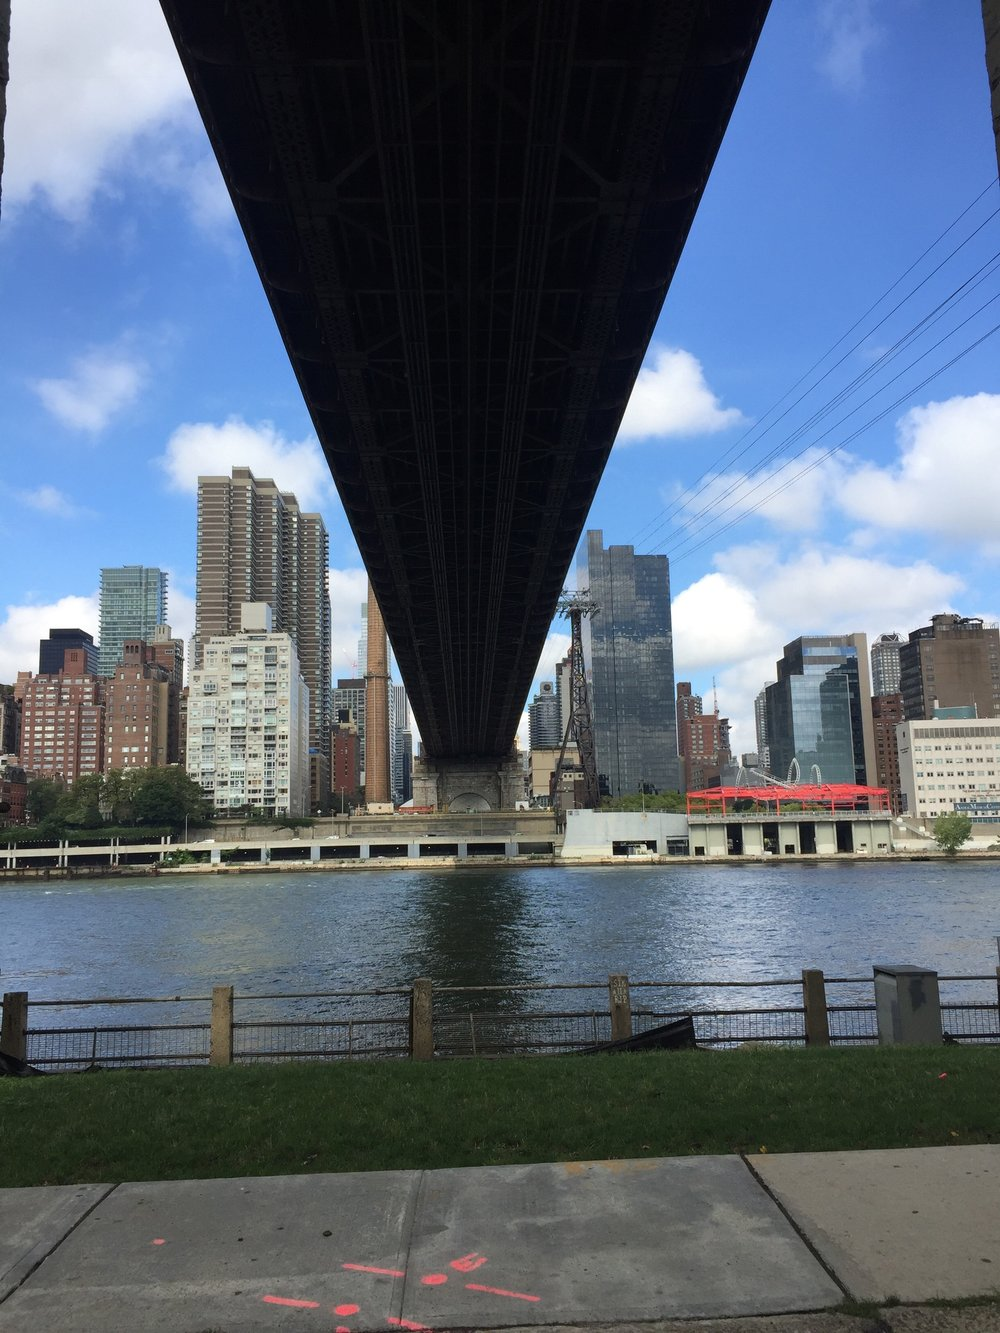 Cool views of our side of town from Roosevelt Island.